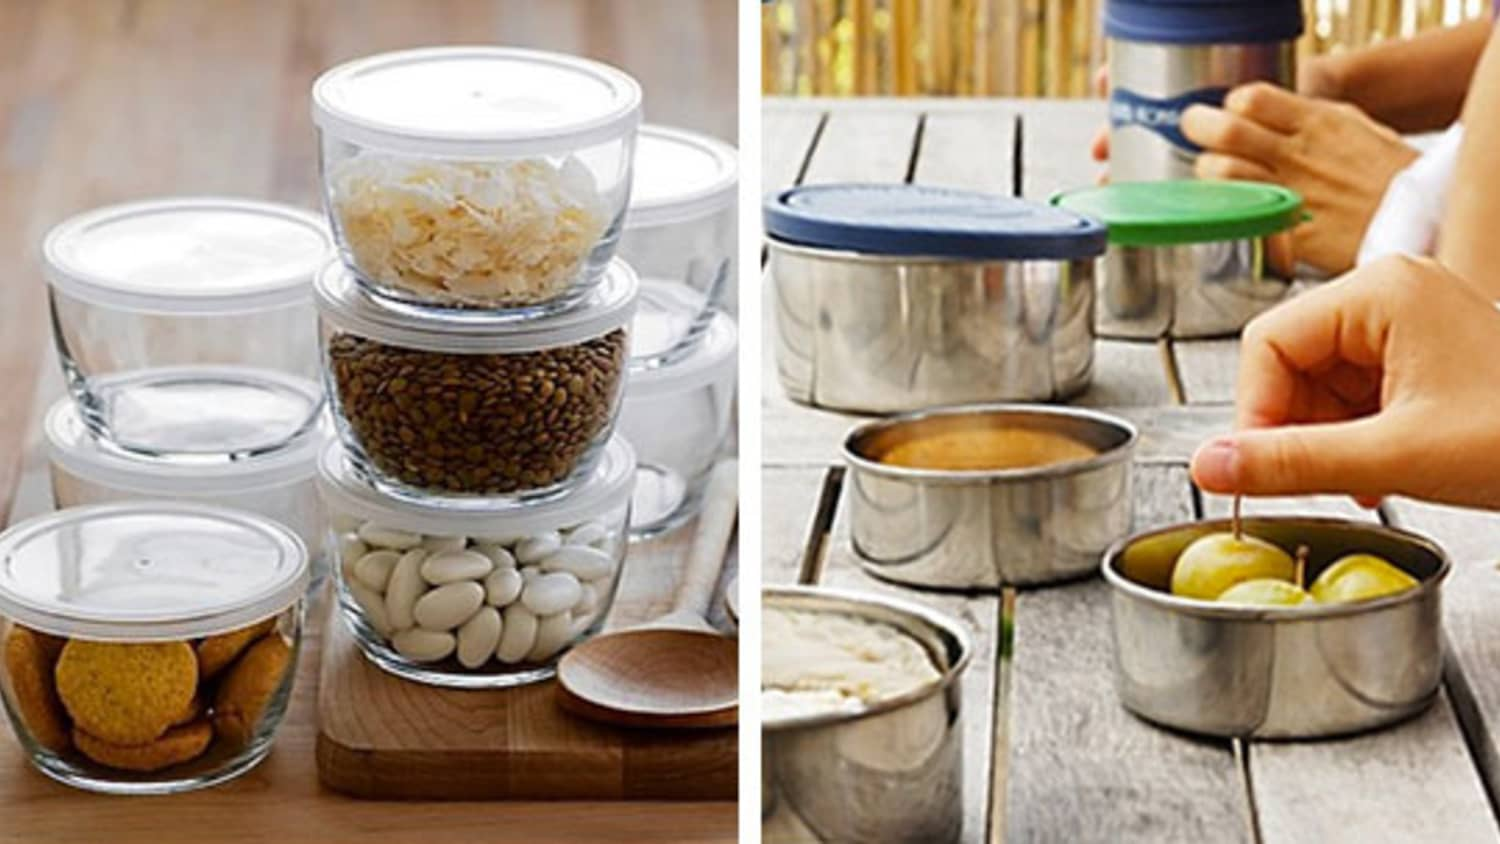 Plastic-Free Containers: Steel vs. Glass | Kitchn